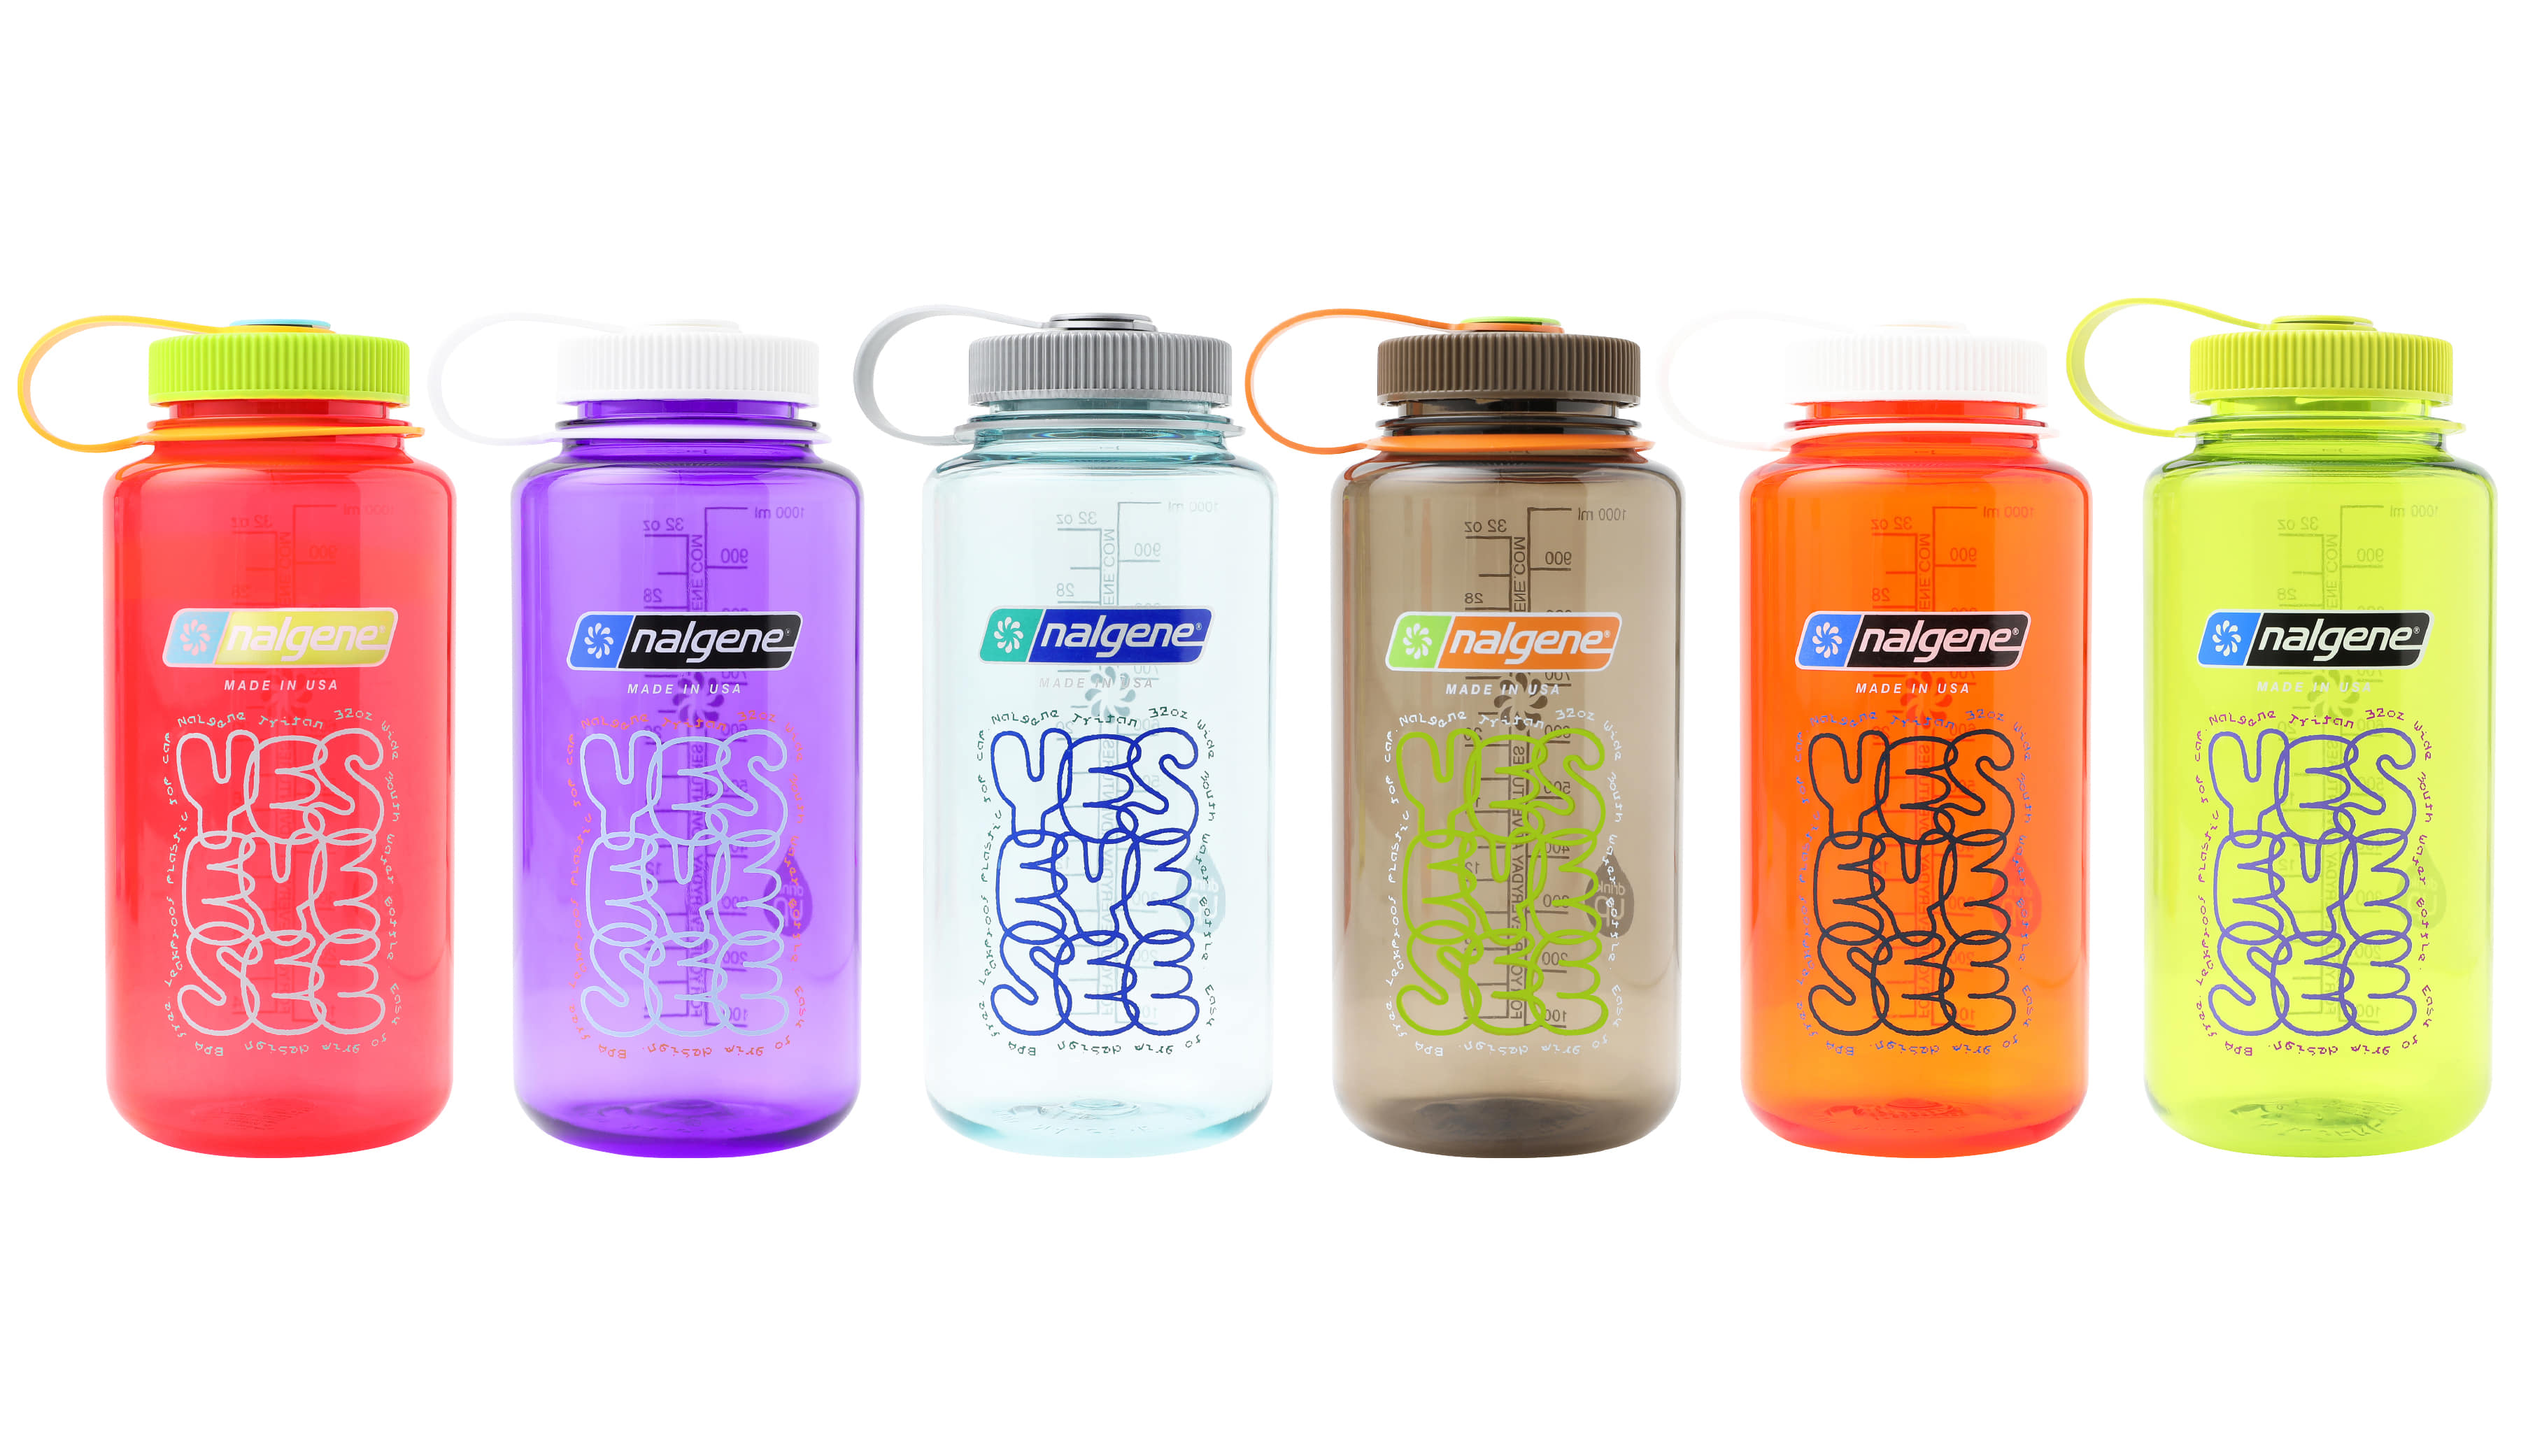 Y.E.S Water Bottle Released!